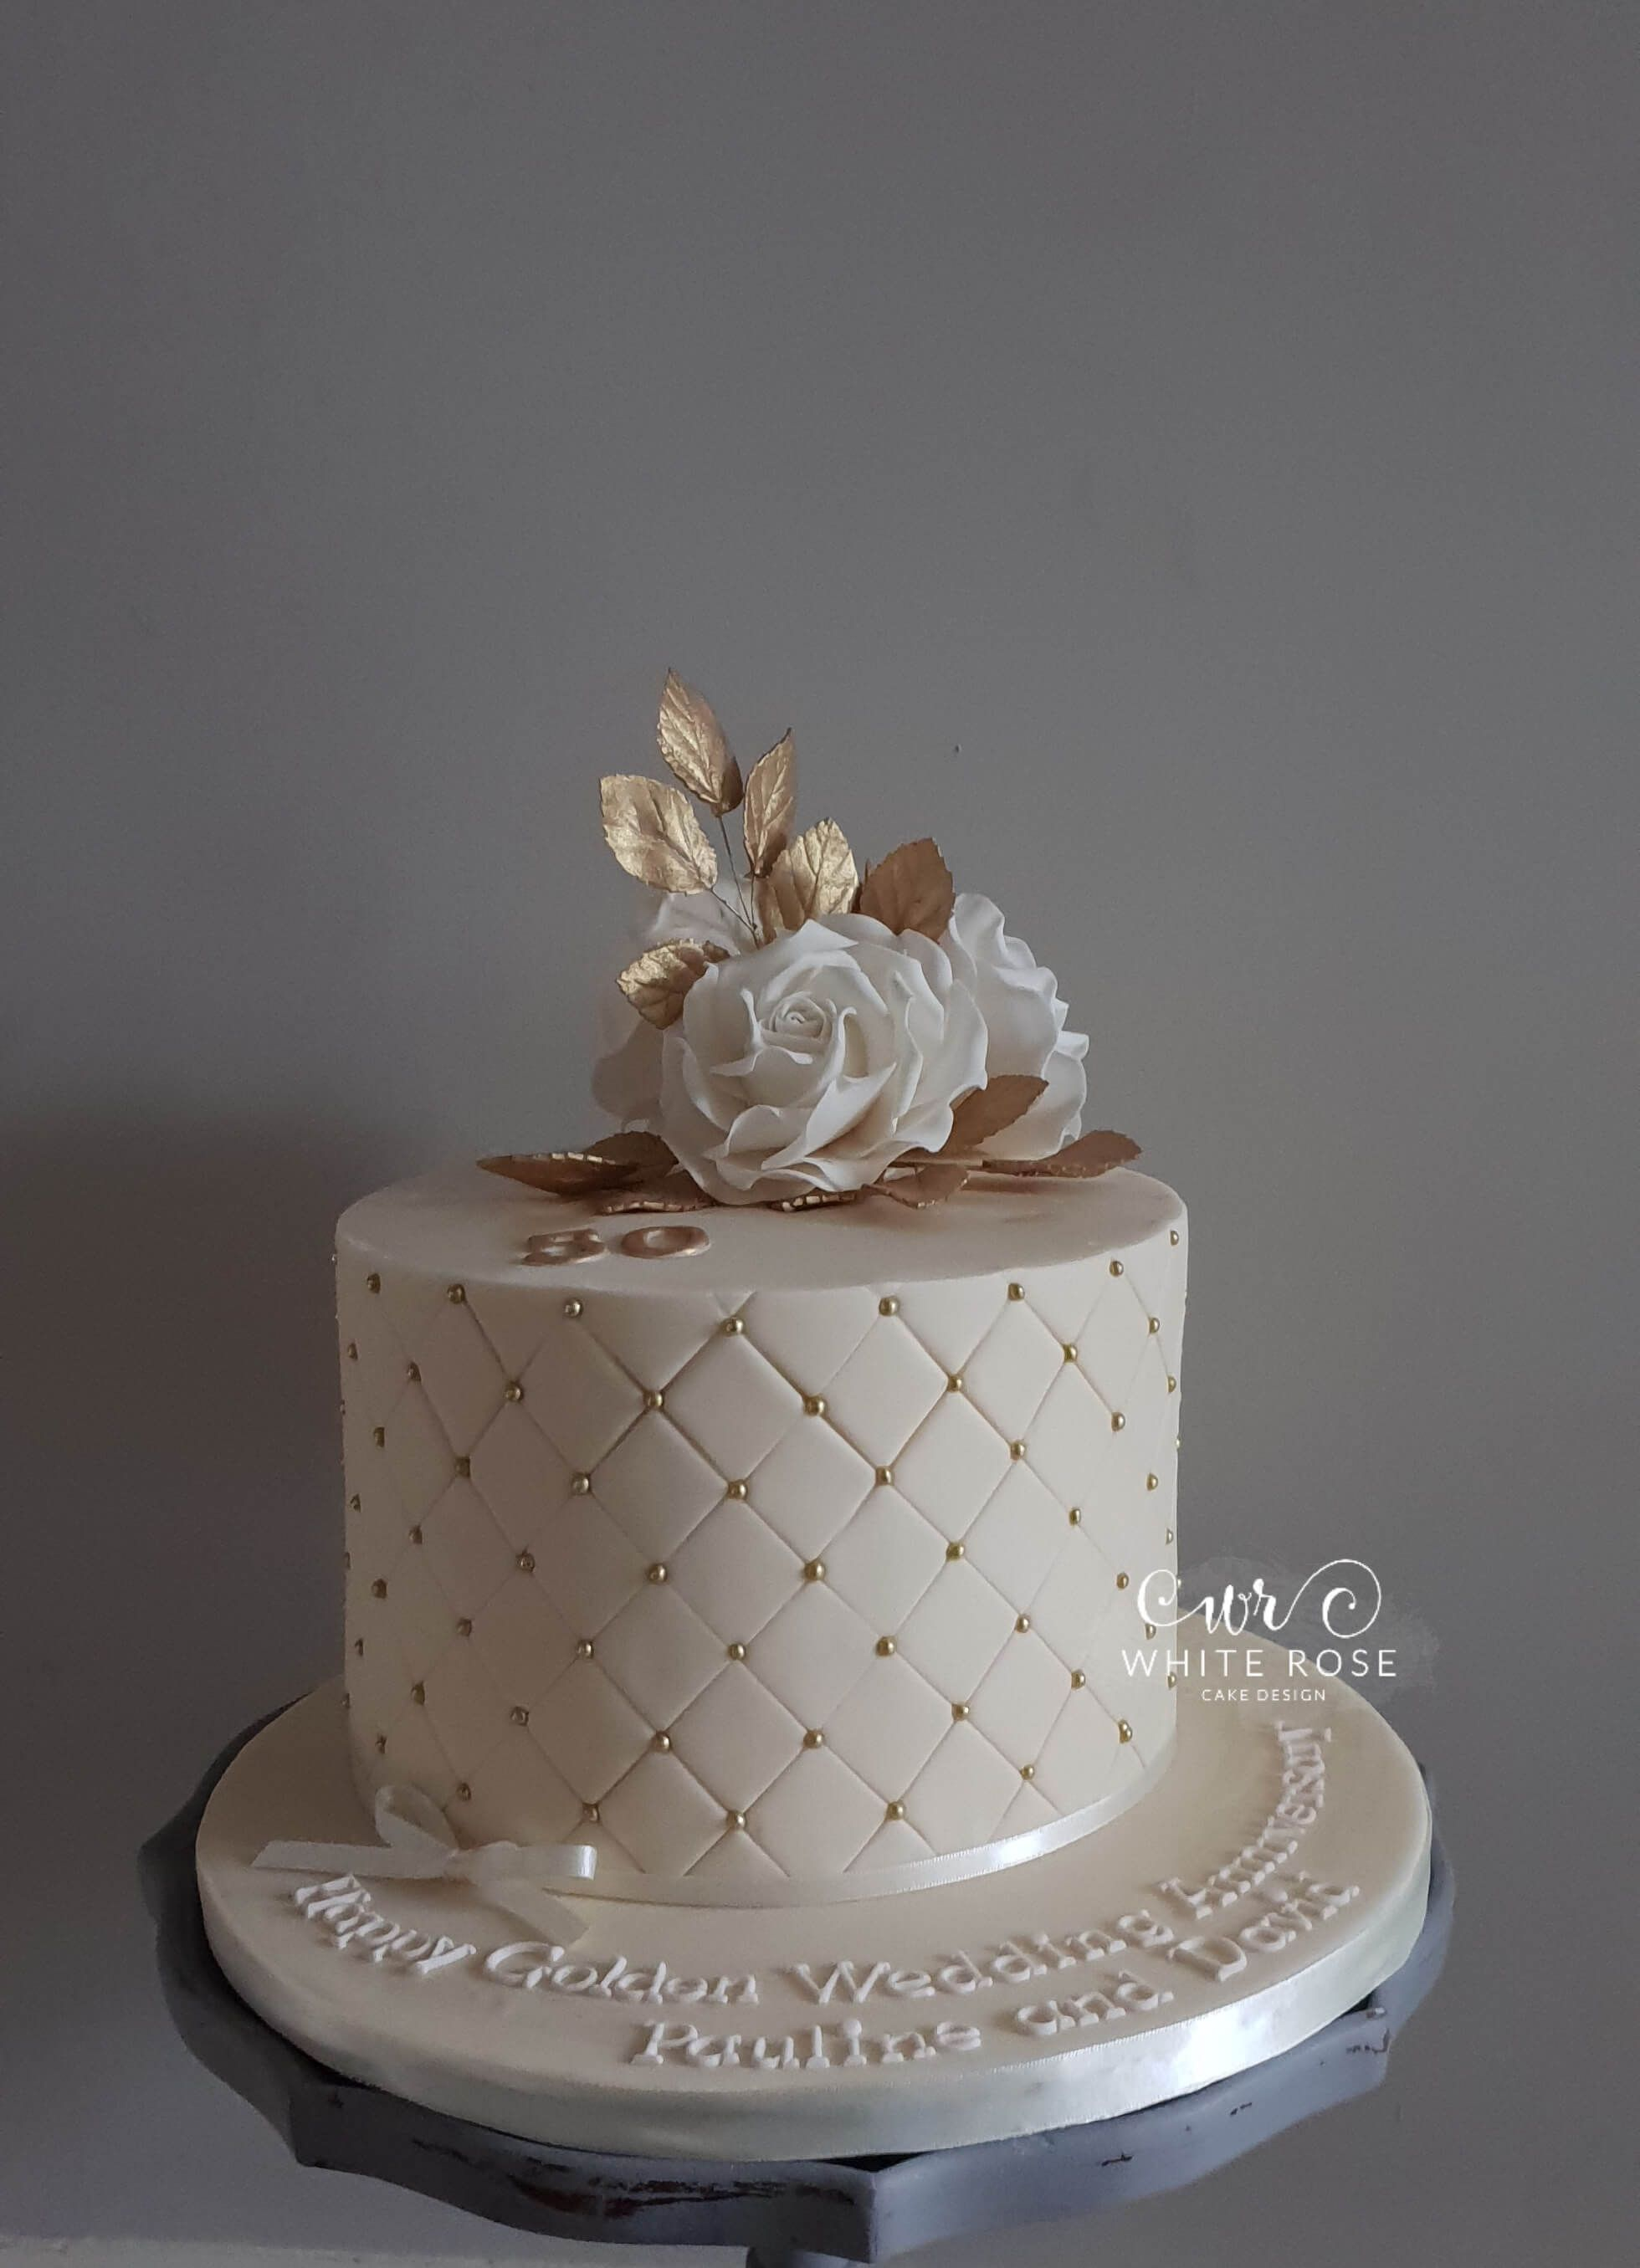 50th Golden Wedding Anniversary Cake By White Rose Cake Design